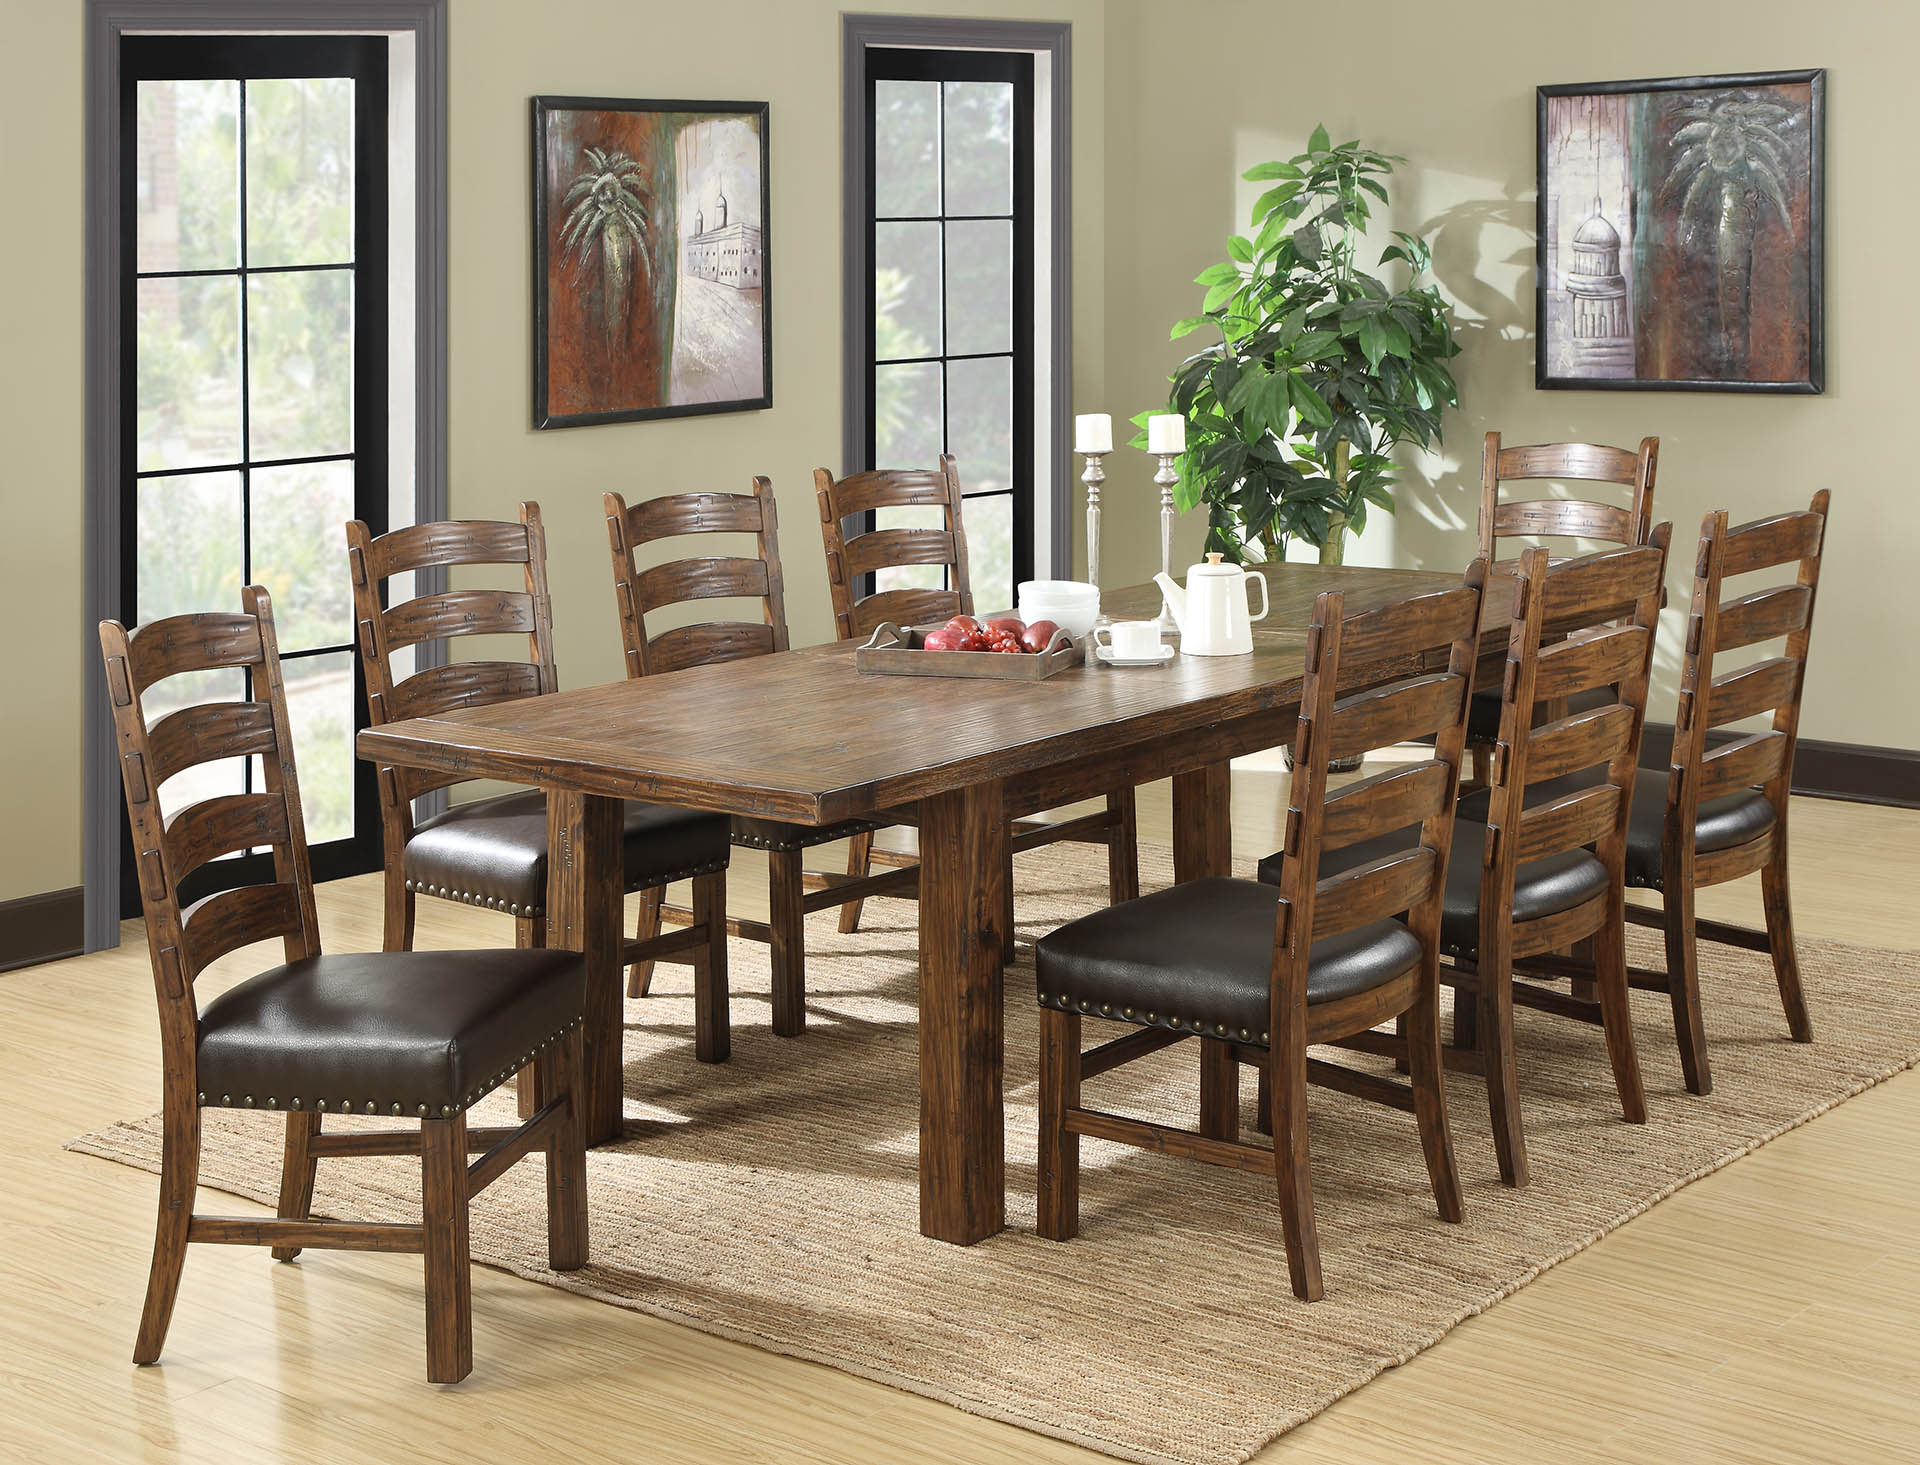 Dining Rooms Home Express Furniture We Are Your Trusted Choice